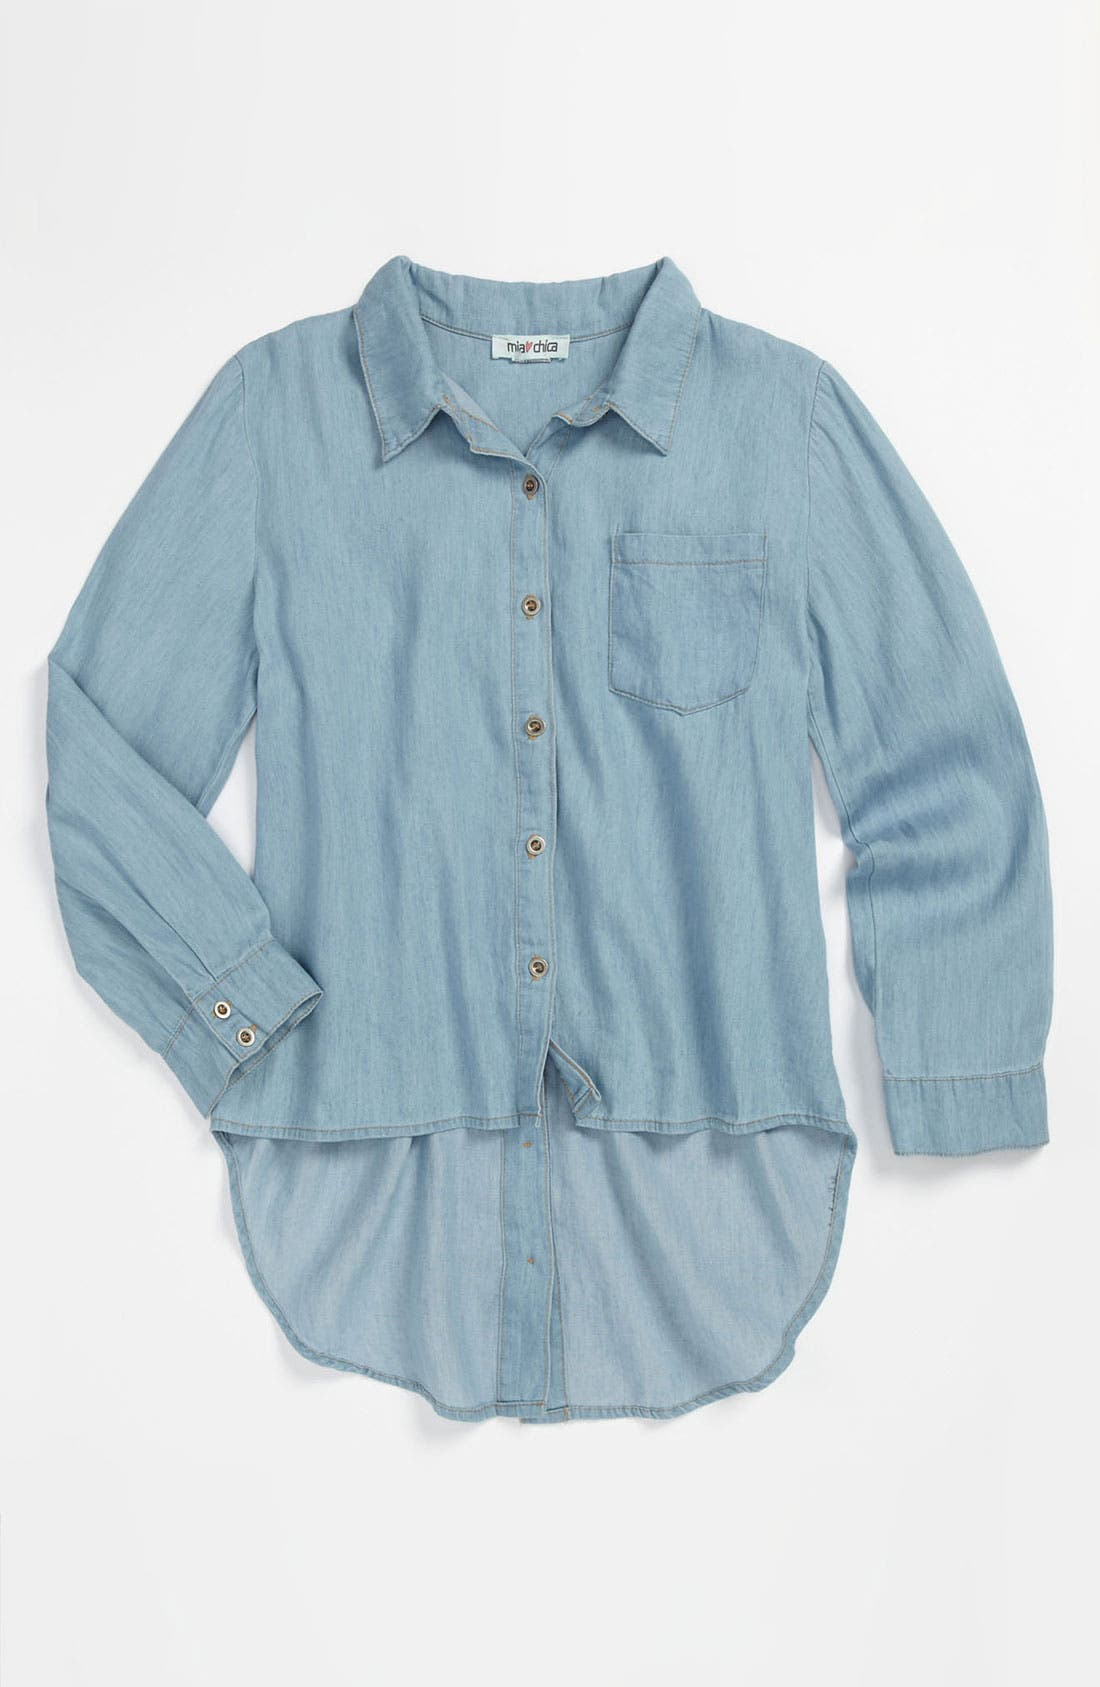 Main Image - Mia Chica Chambray Shirt (Big Girls)